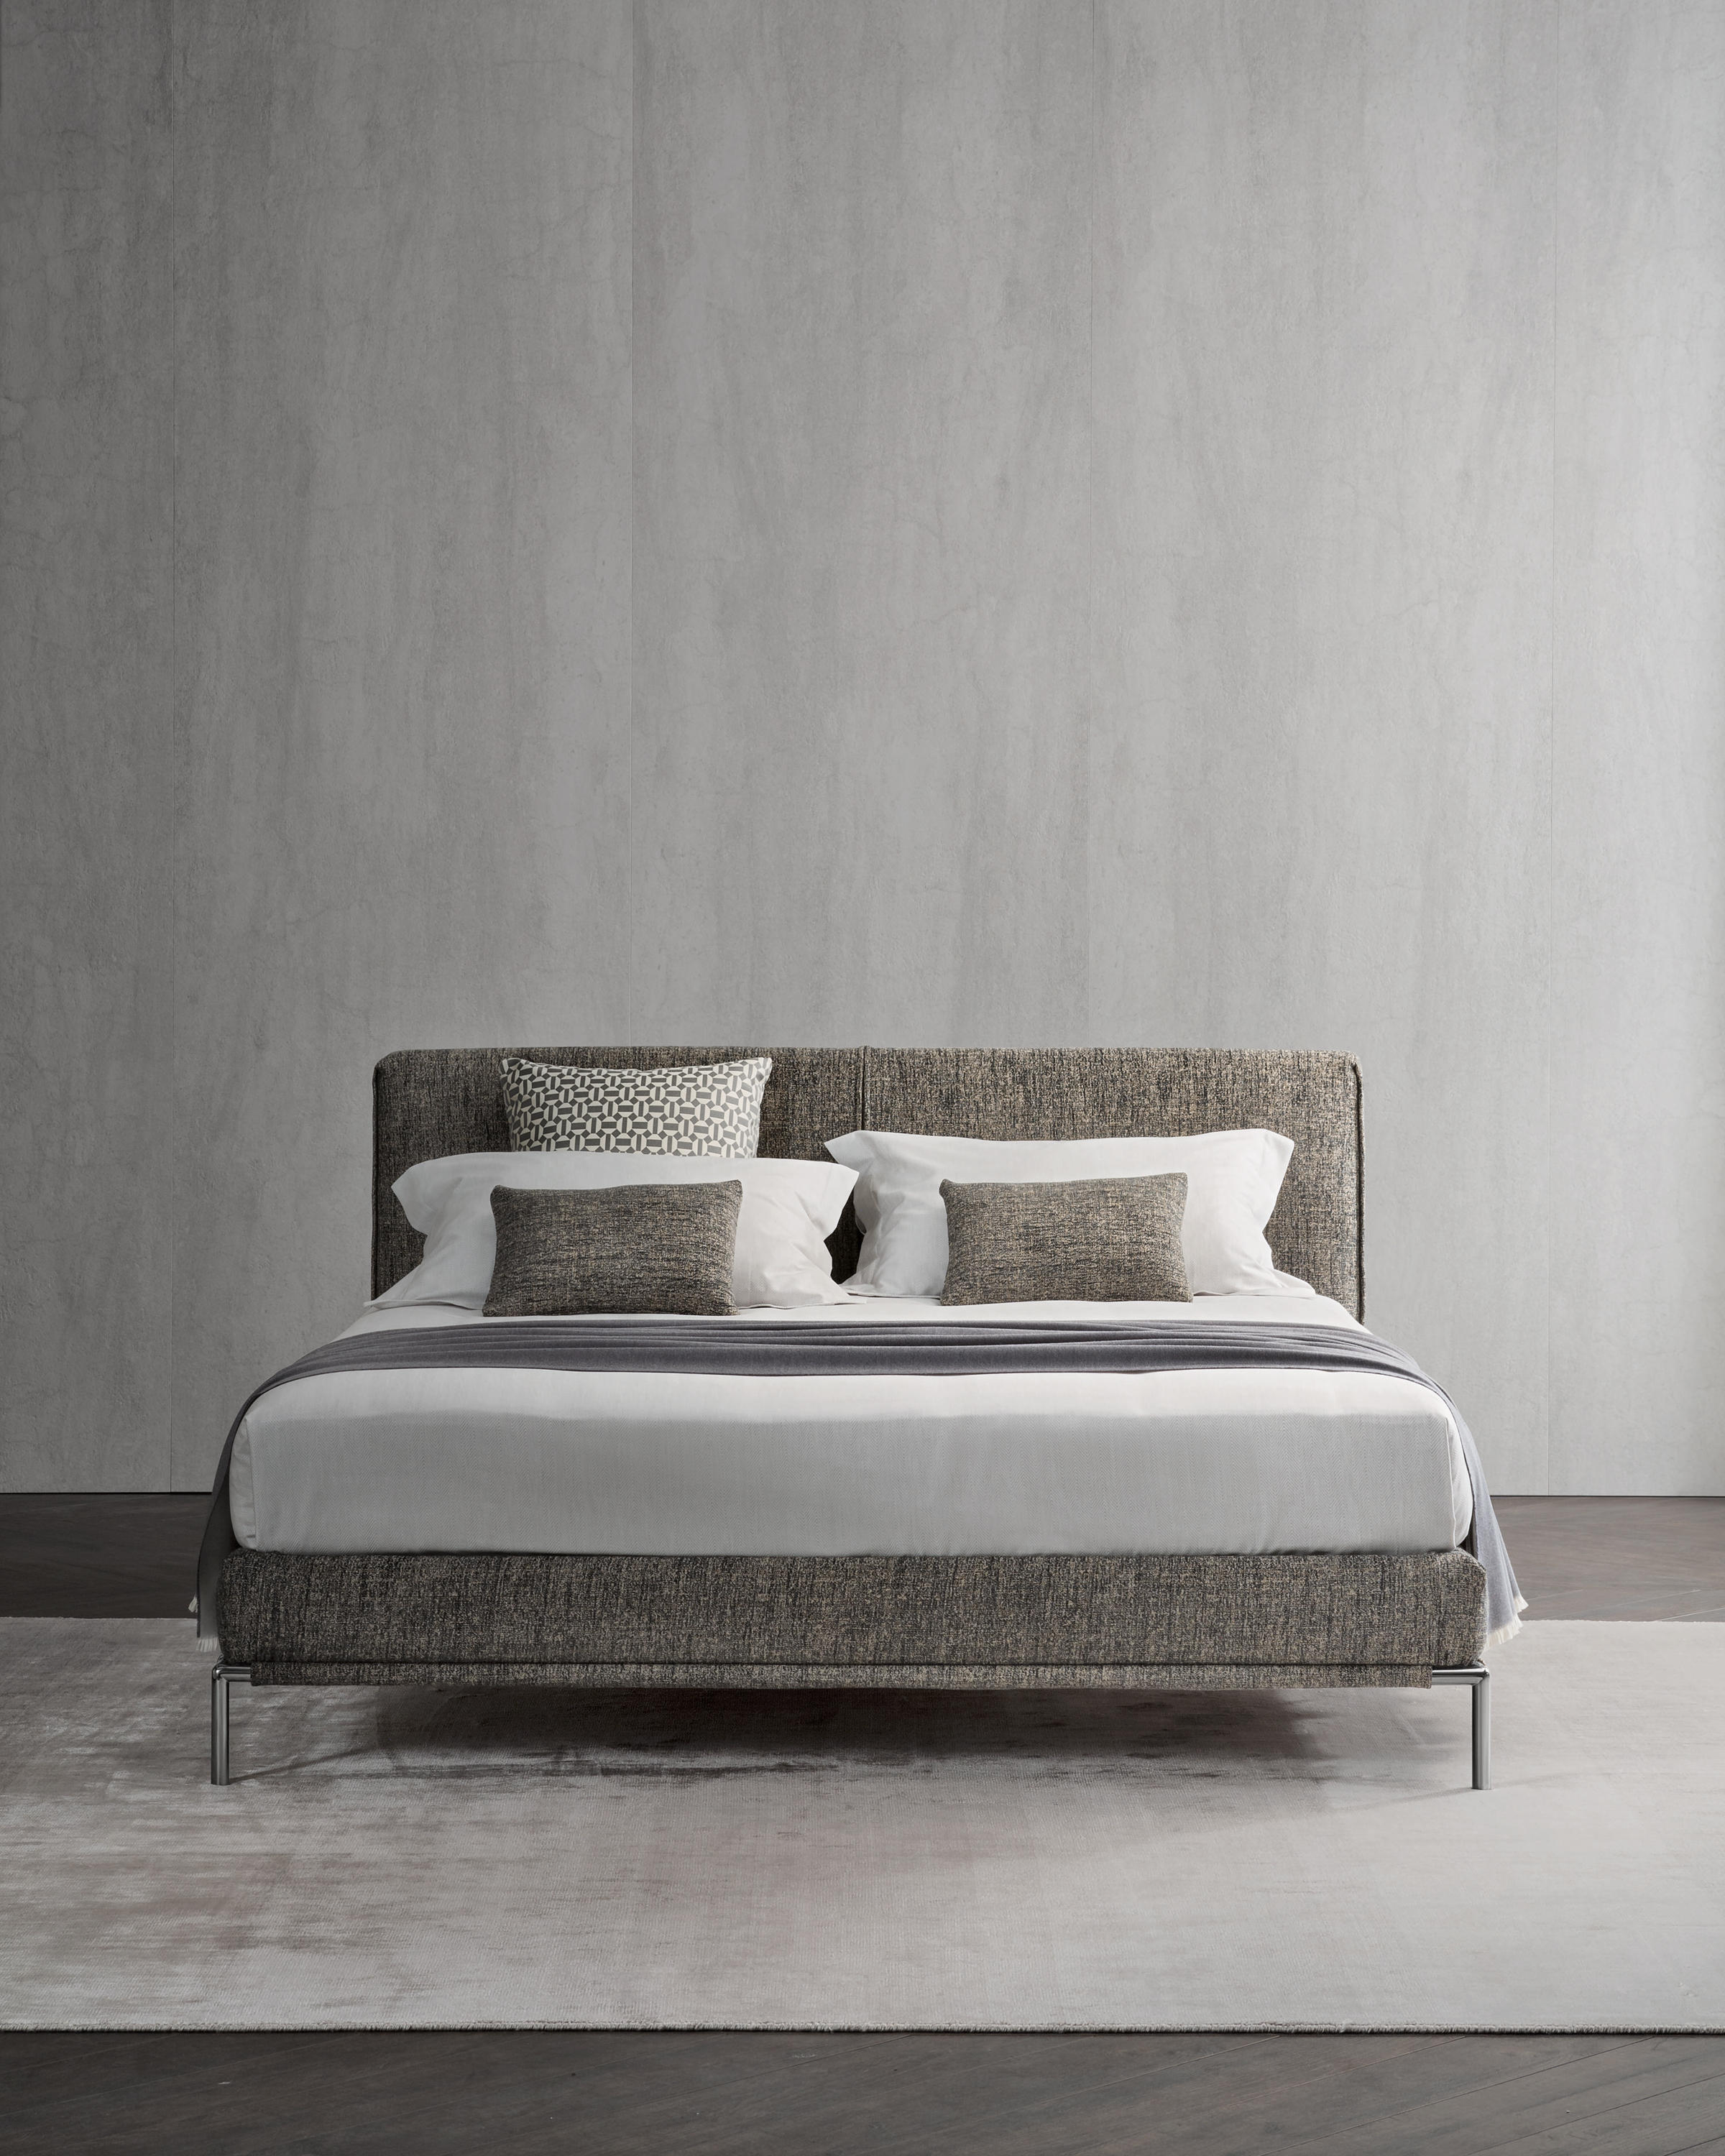 Divano Letto Flou Piazza Duomo.Icon Beds From Flou Architonic